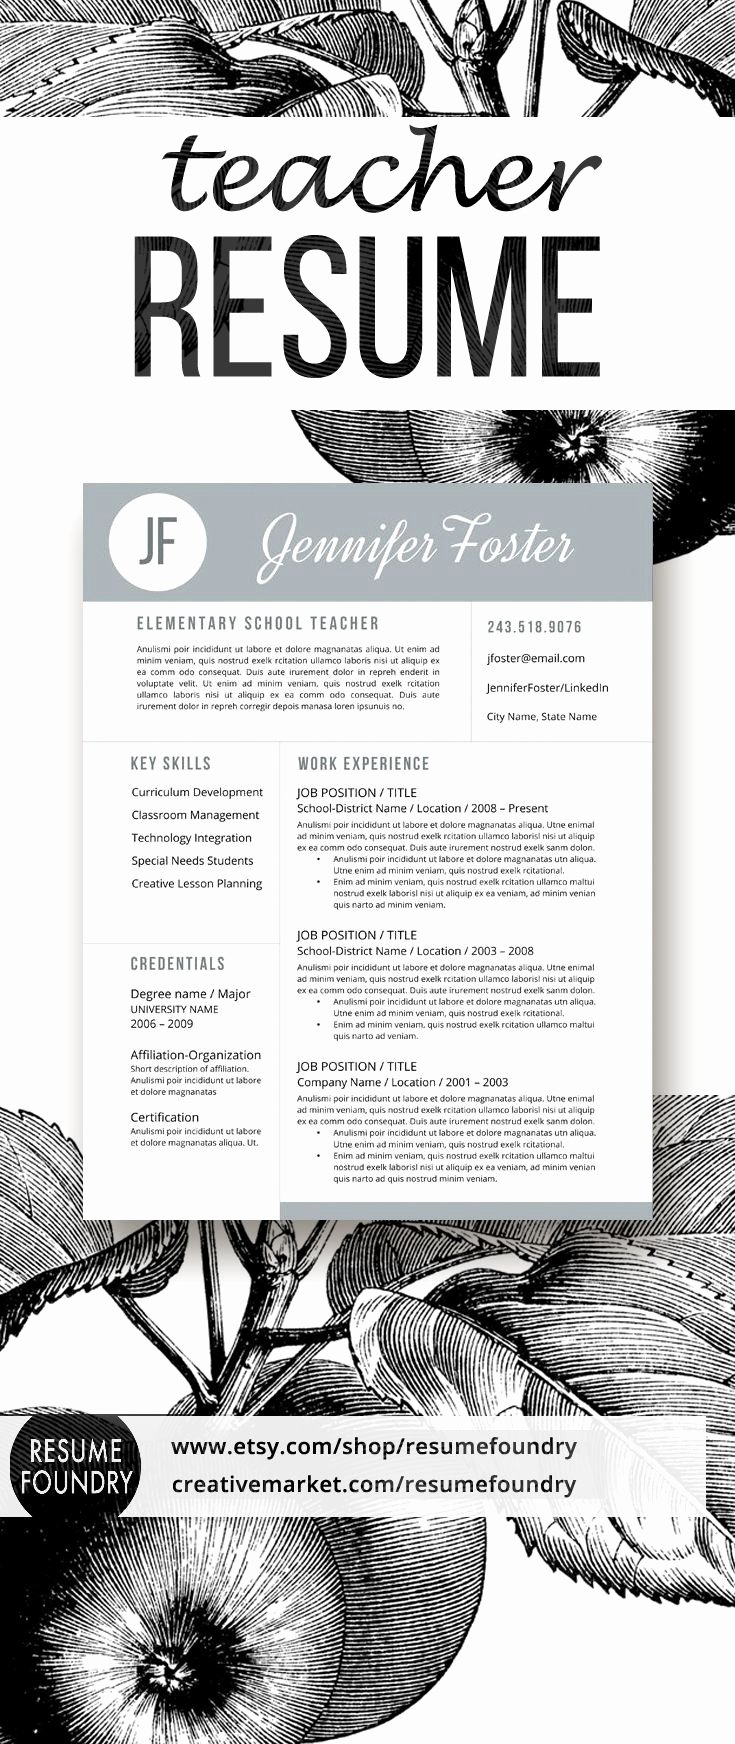 Resume Template for Teachers Inspirational Best 25 Teacher Resume Template Ideas On Pinterest